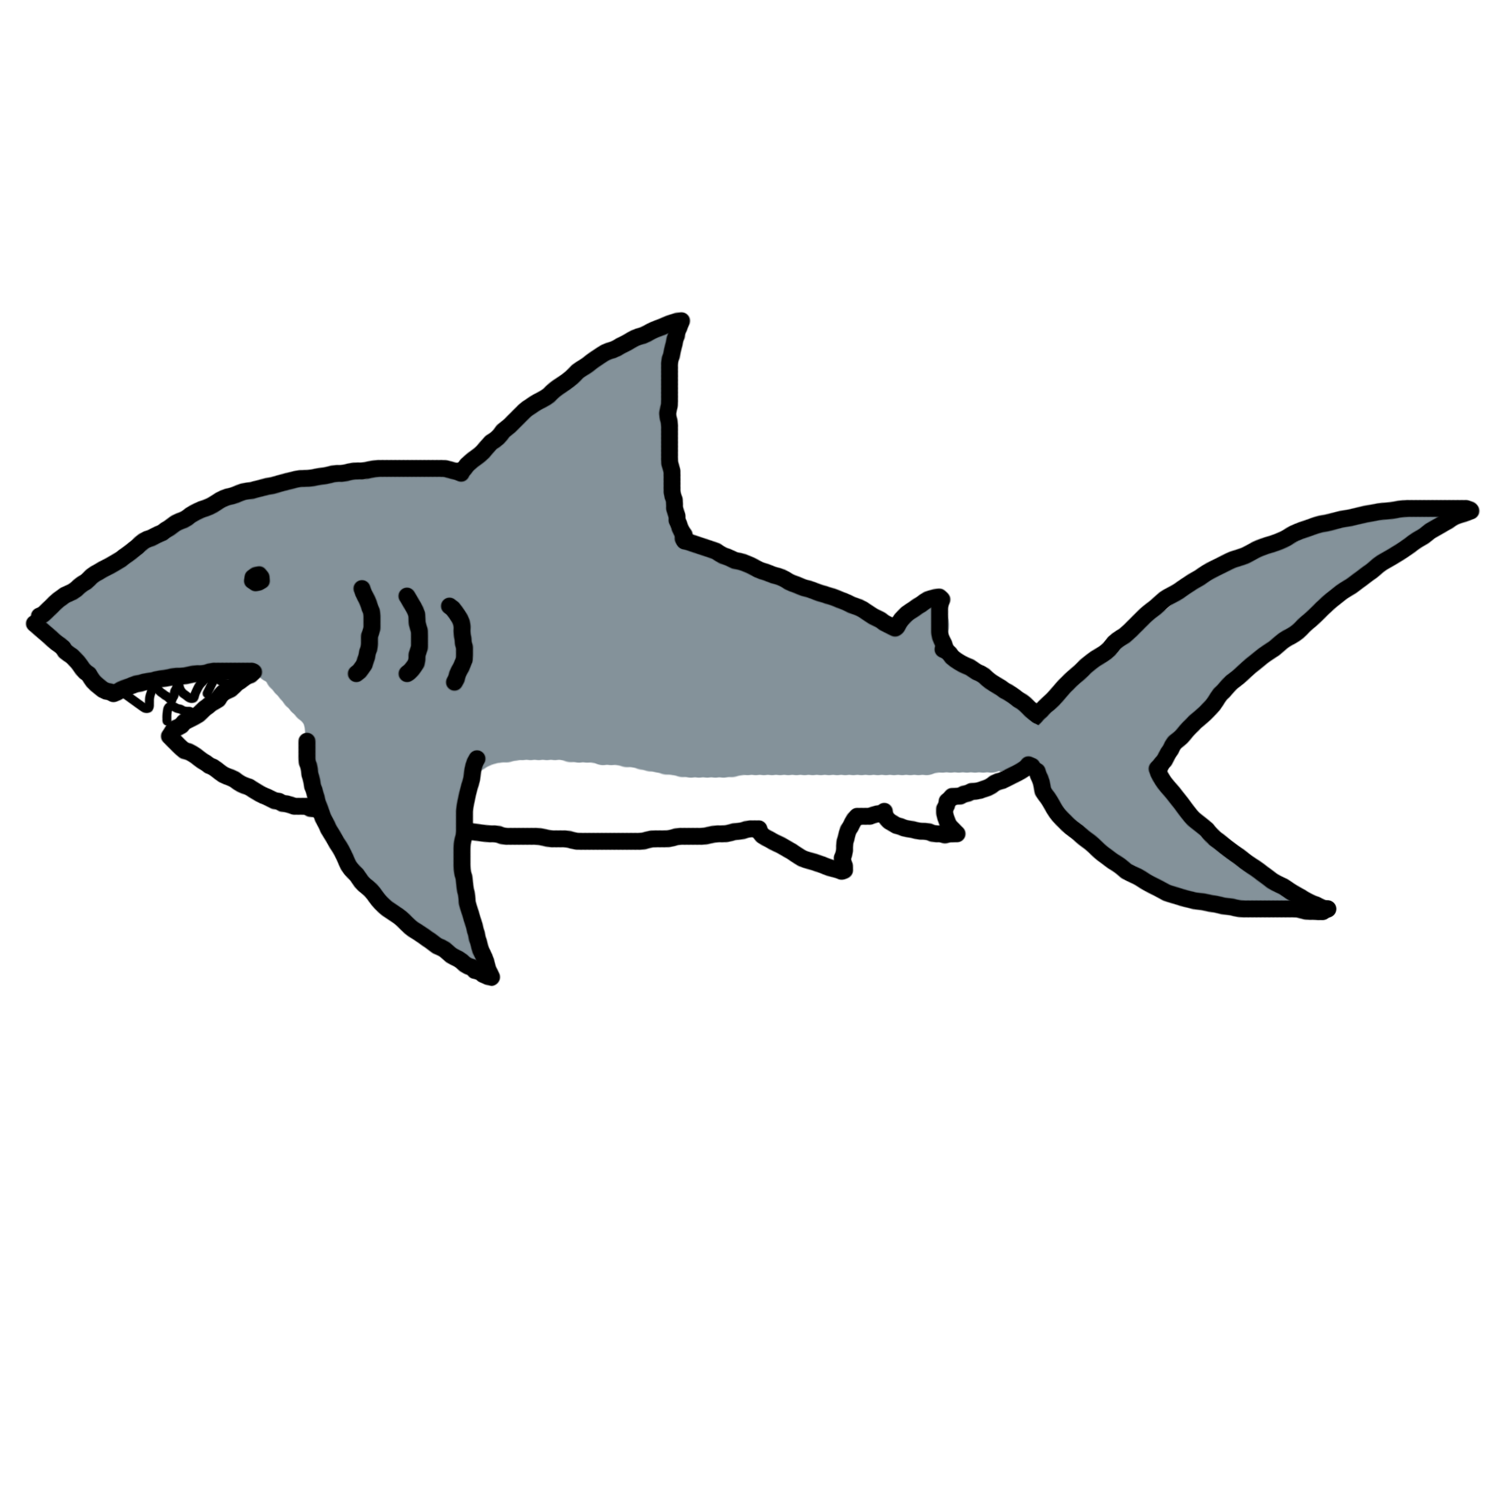 Clipart shark mama, Clipart shark mama Transparent FREE for.